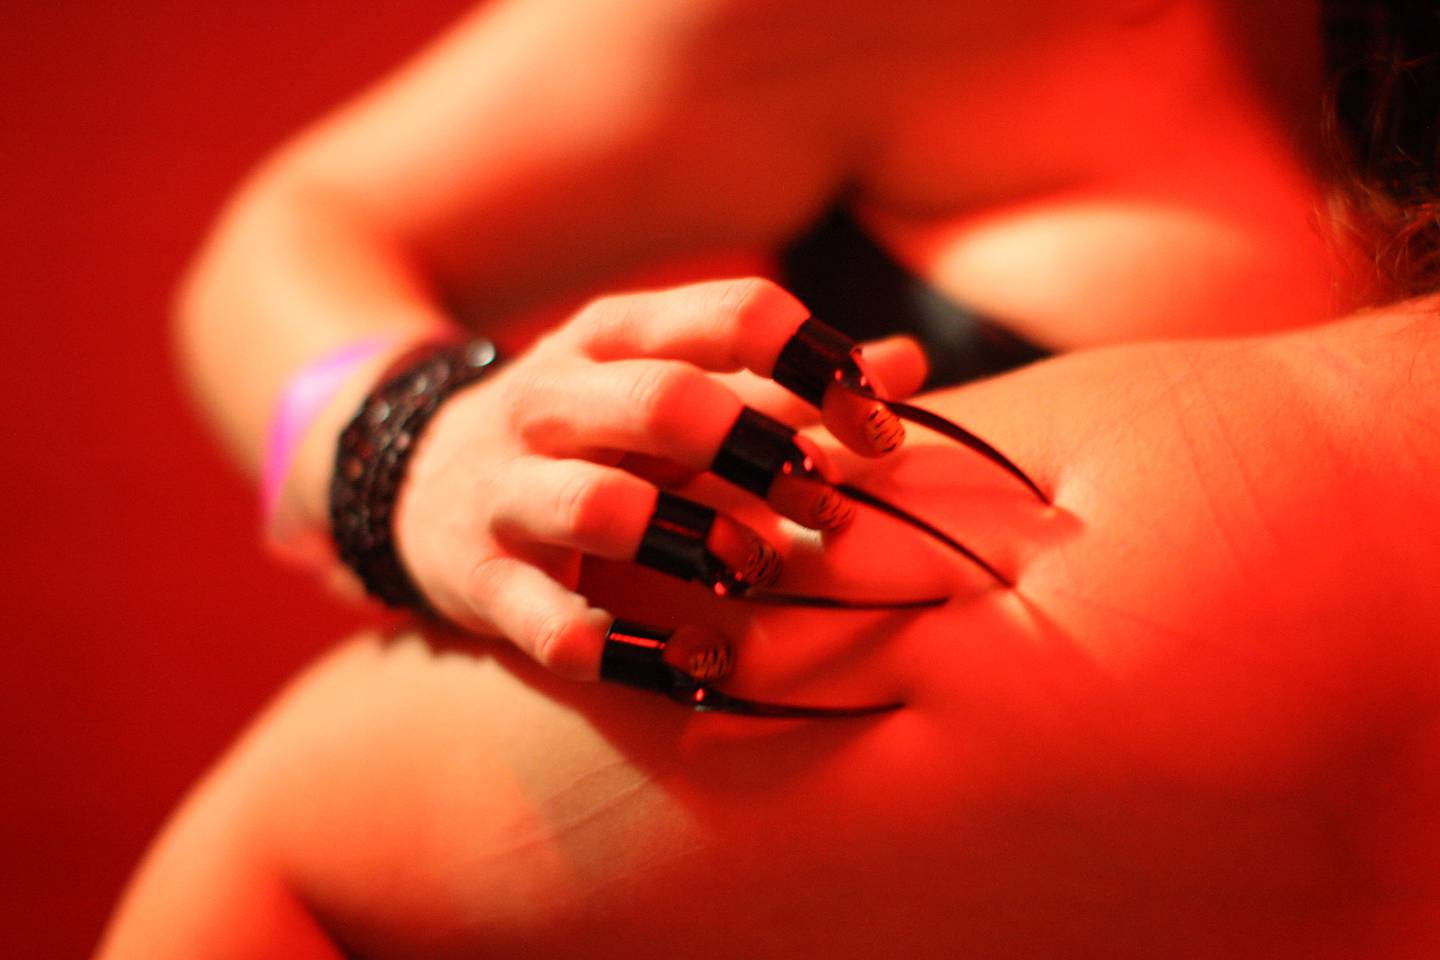 LOS ANGELES, CA - MAY19: Mistress drags metal claws over the skin of Katie who is a willing submissive at a dungeon party during the DomConLA convention in the early morning hours of May 19, 2012 in Los Angeles, California. DomCon brings together enthusiasts of BDSM (Bondage, Discipline, Submission and Dominance) and other sexual fetishes. The convention, started in 2003 by fetish professional, Mistress Cyan, is claimed to be the largest convention of its kind in the U.S. DomConLA will continue through May 20.   David McNew/Getty Images/AFP